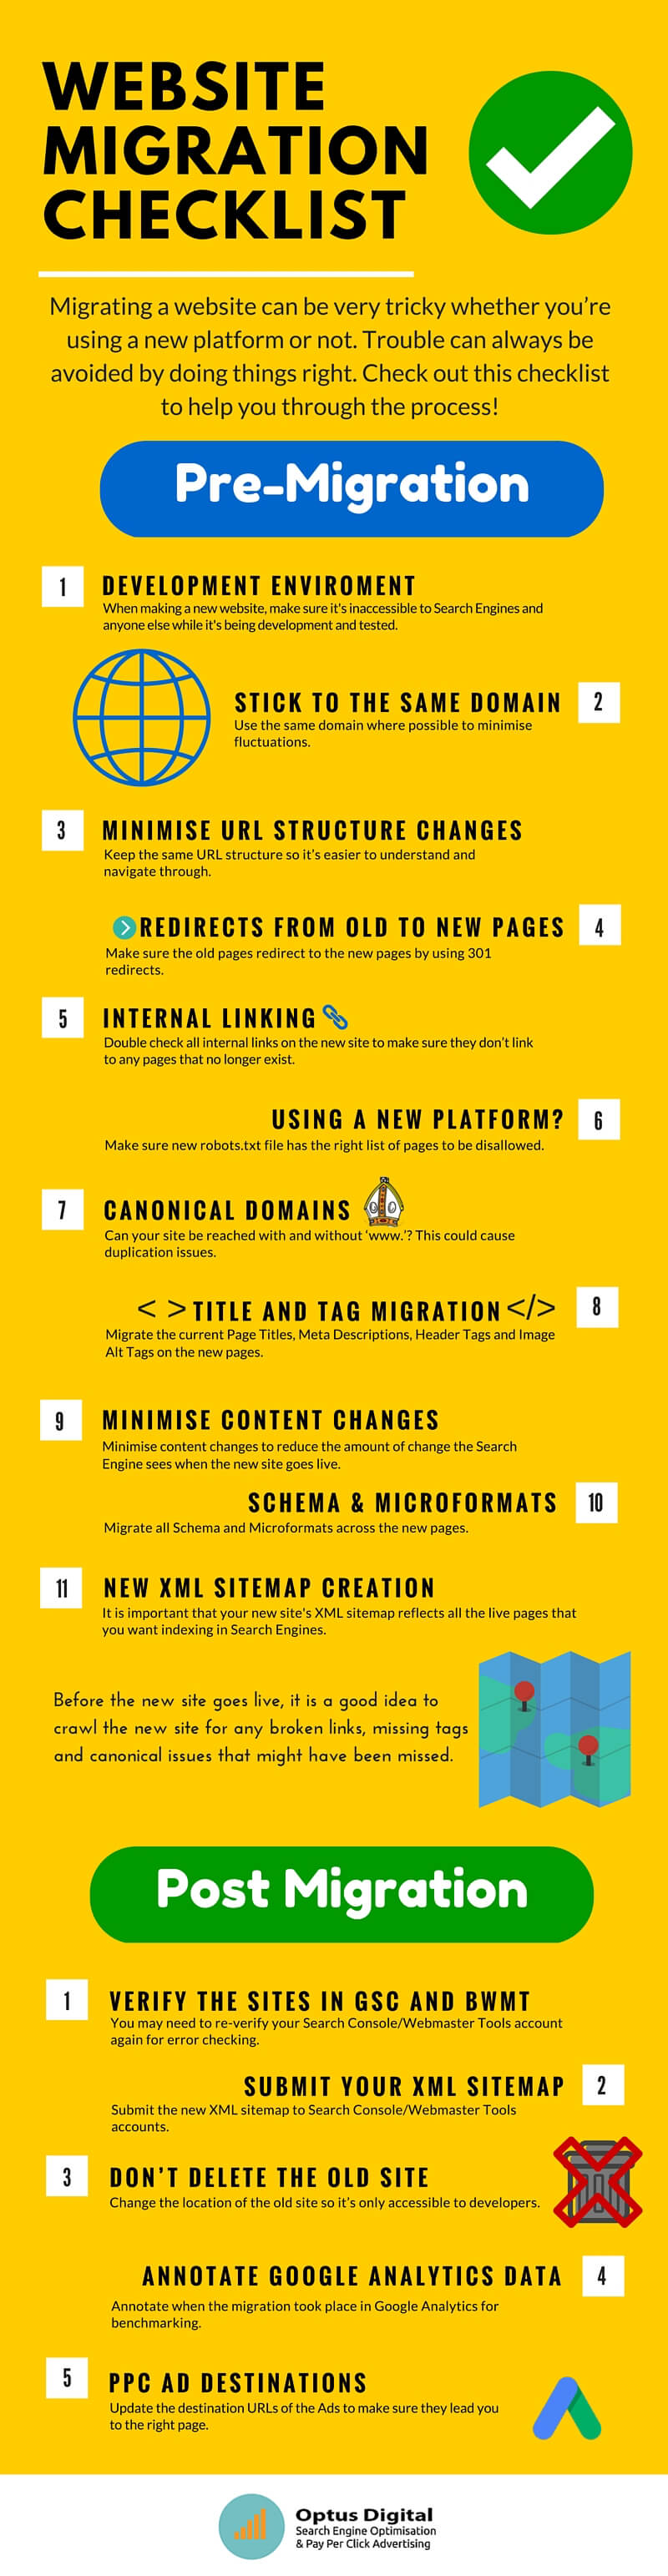 How To Transfer Website From One Host To Anothe - WEBSITE MIGRATION CHECKLIST - Infographic